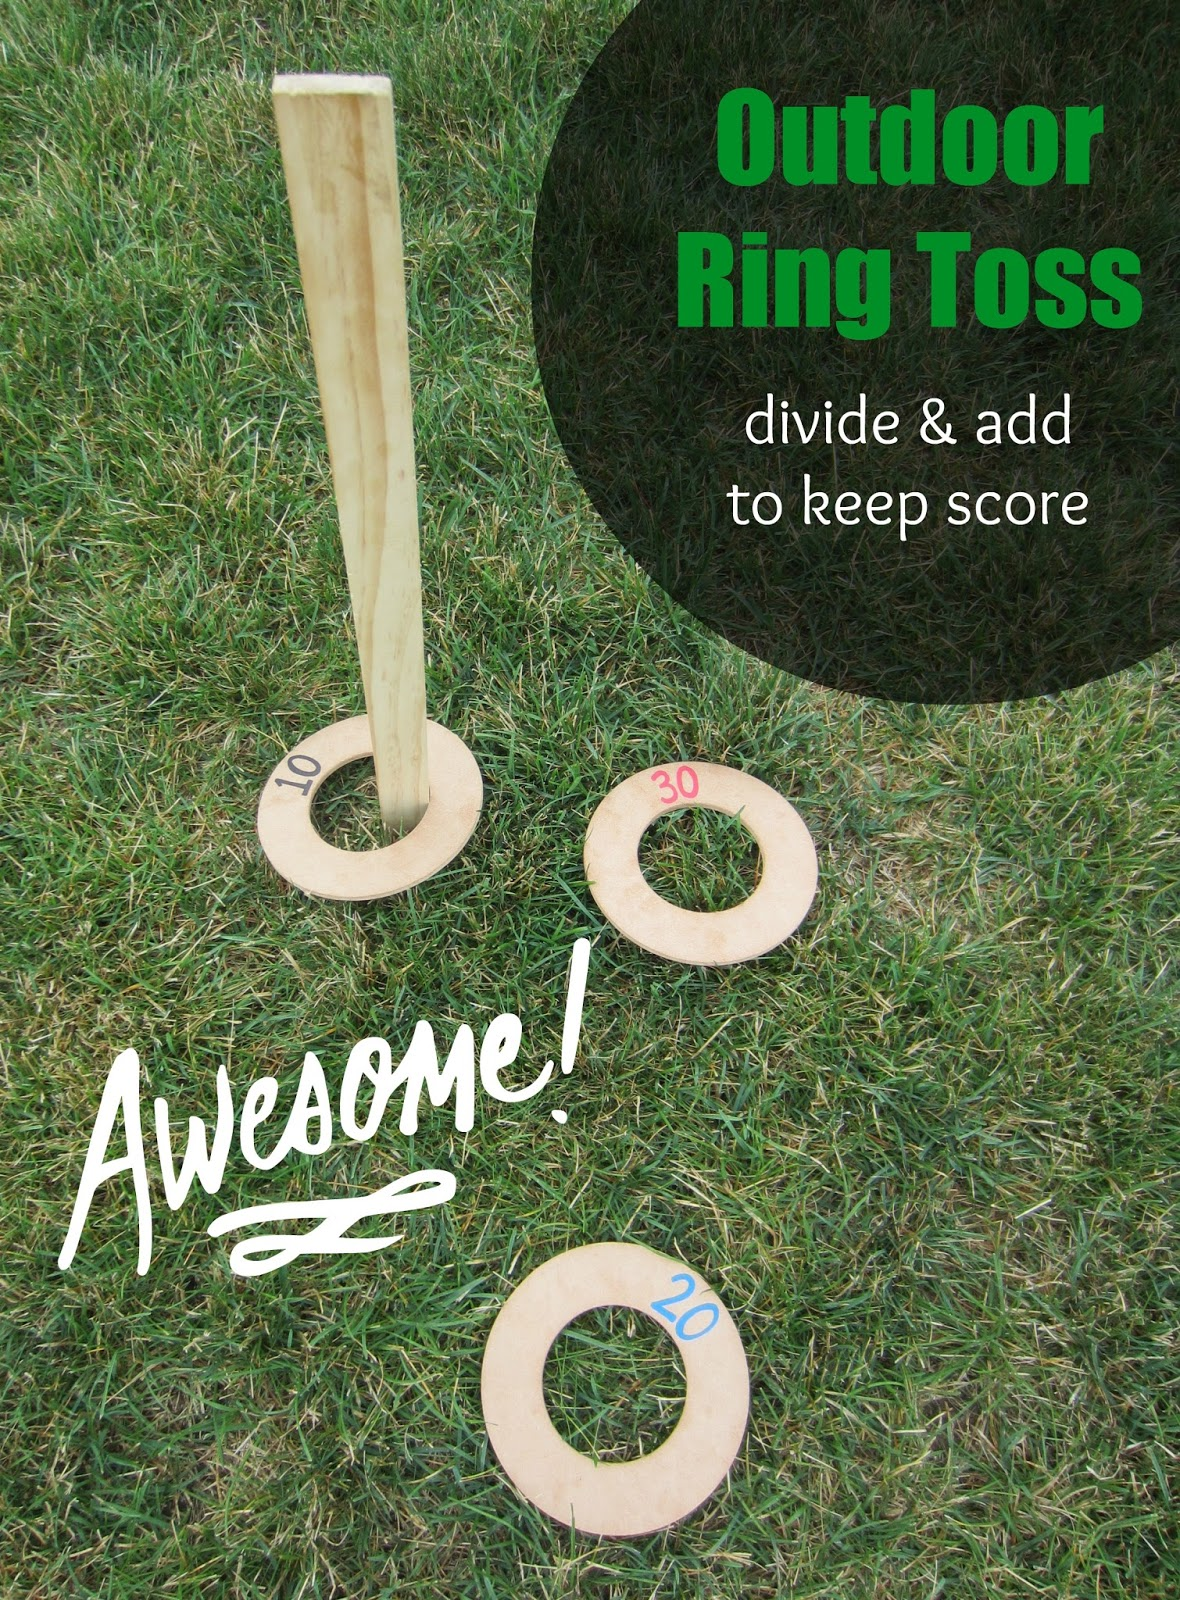 Exceptional Outdoor Ring Toss Game [Division/Addition]